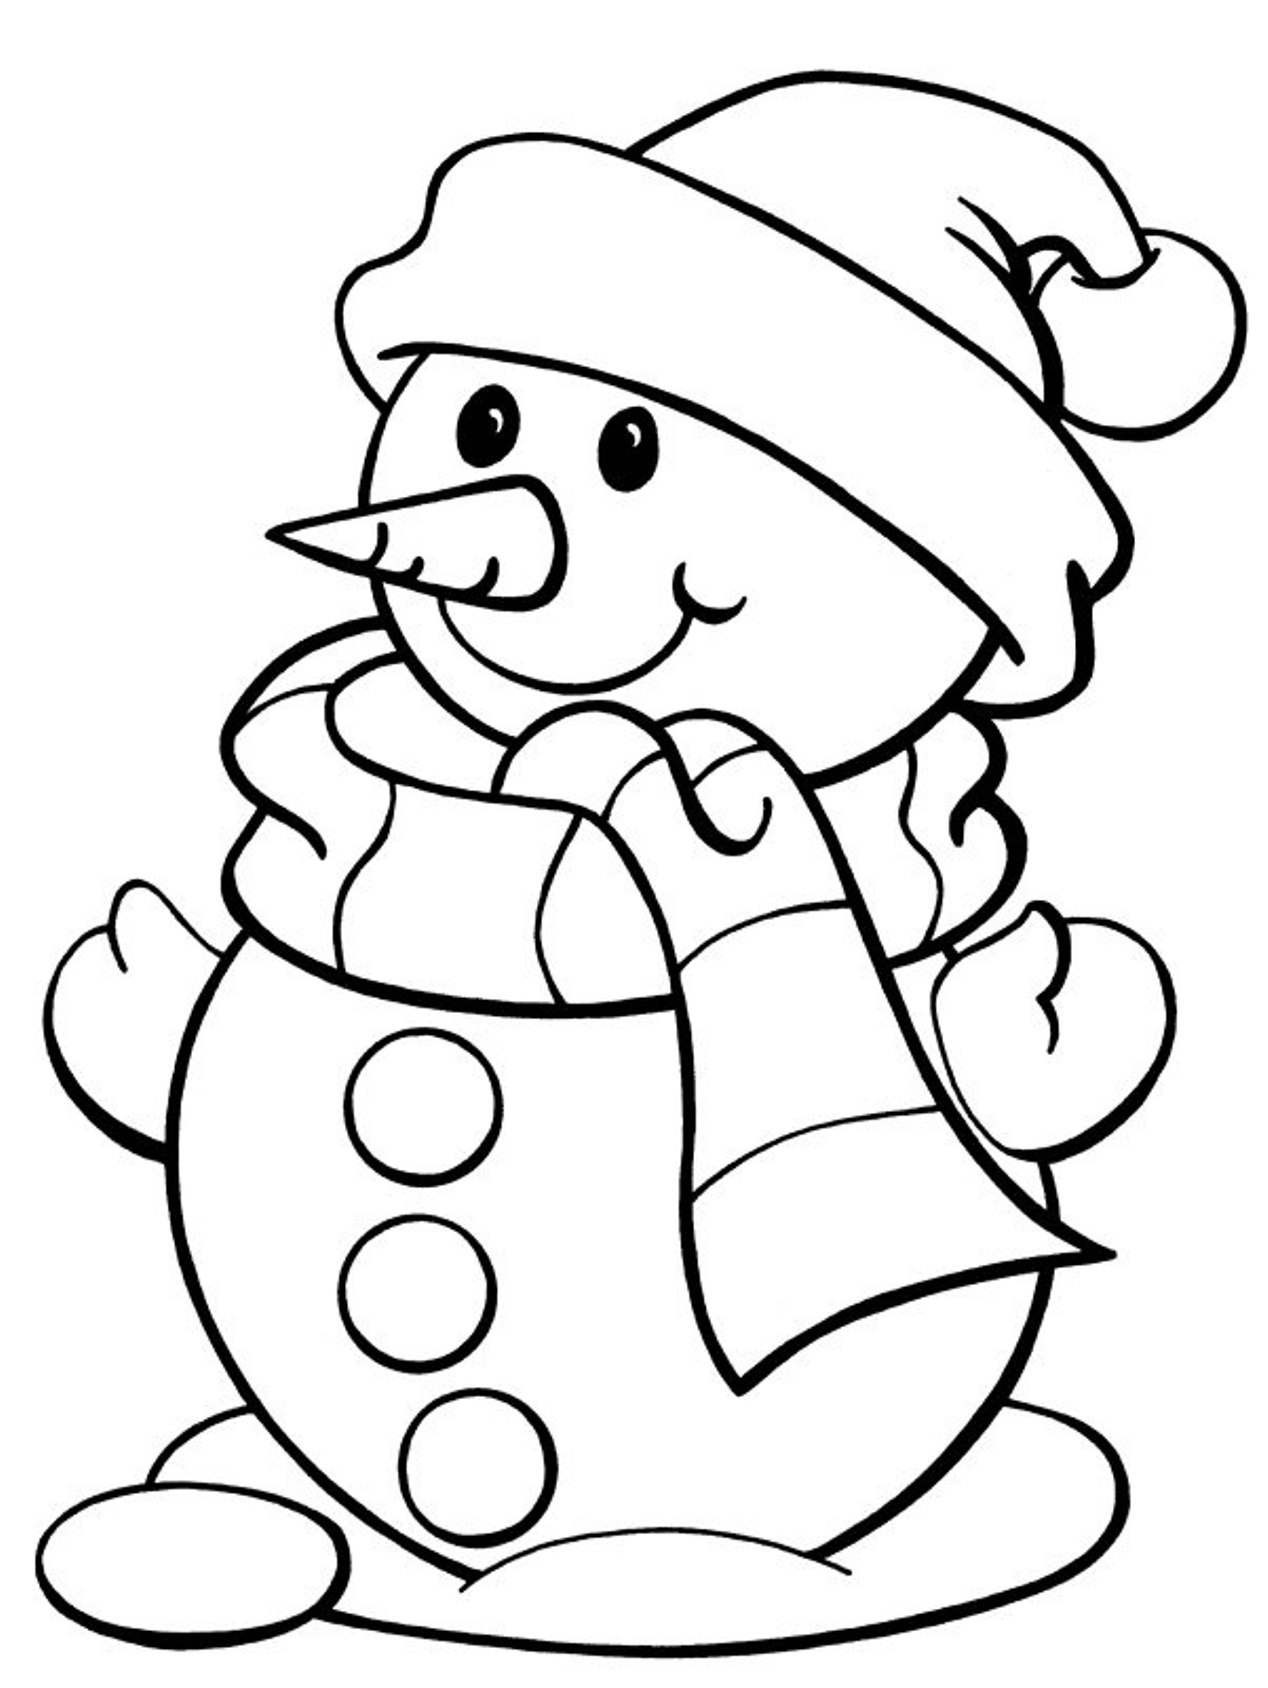 Coloring Pages 4 Kids